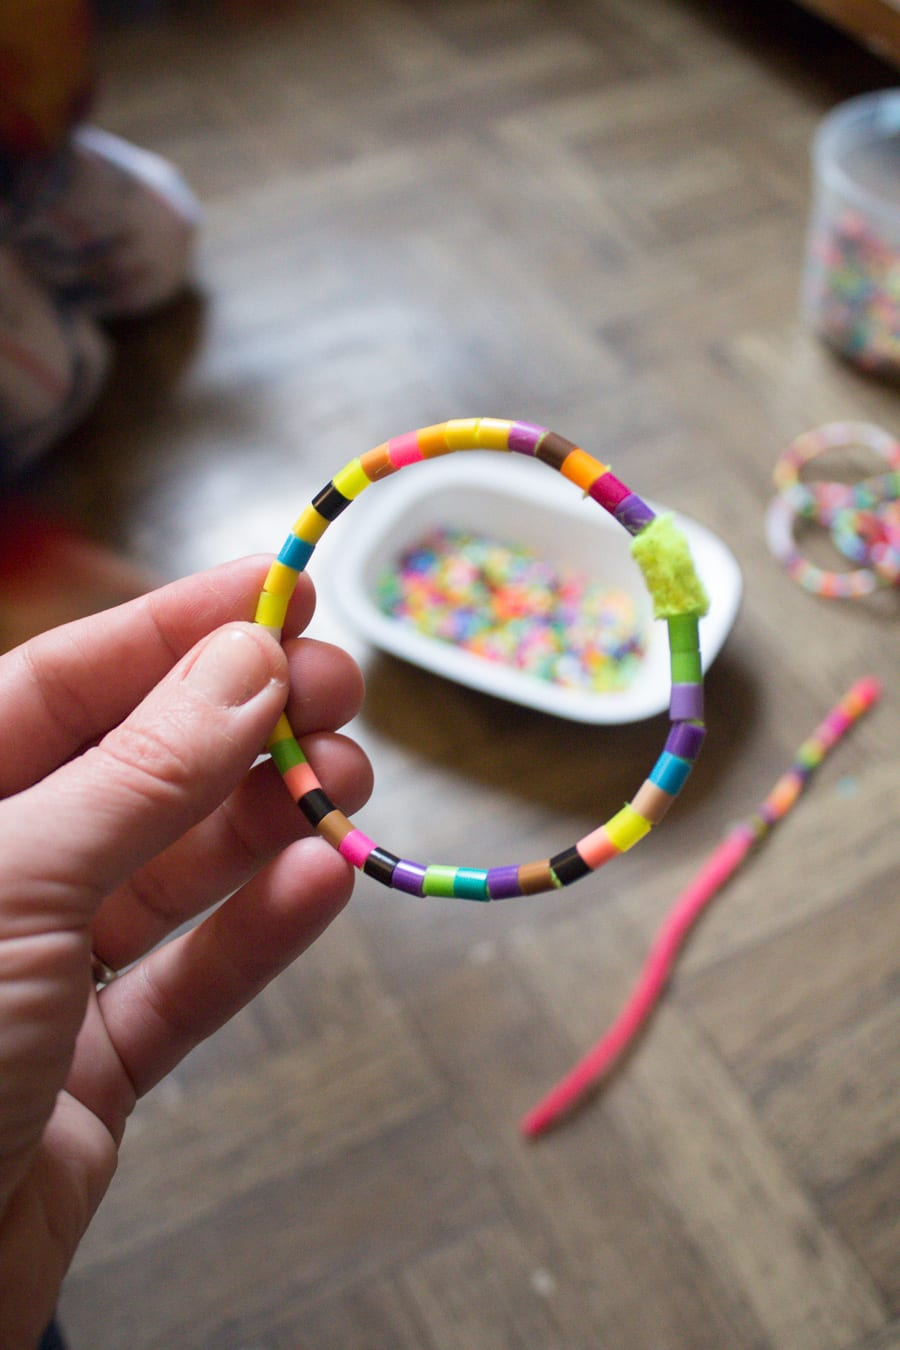 Easy Crafts for Kids // Closet Case Patterns